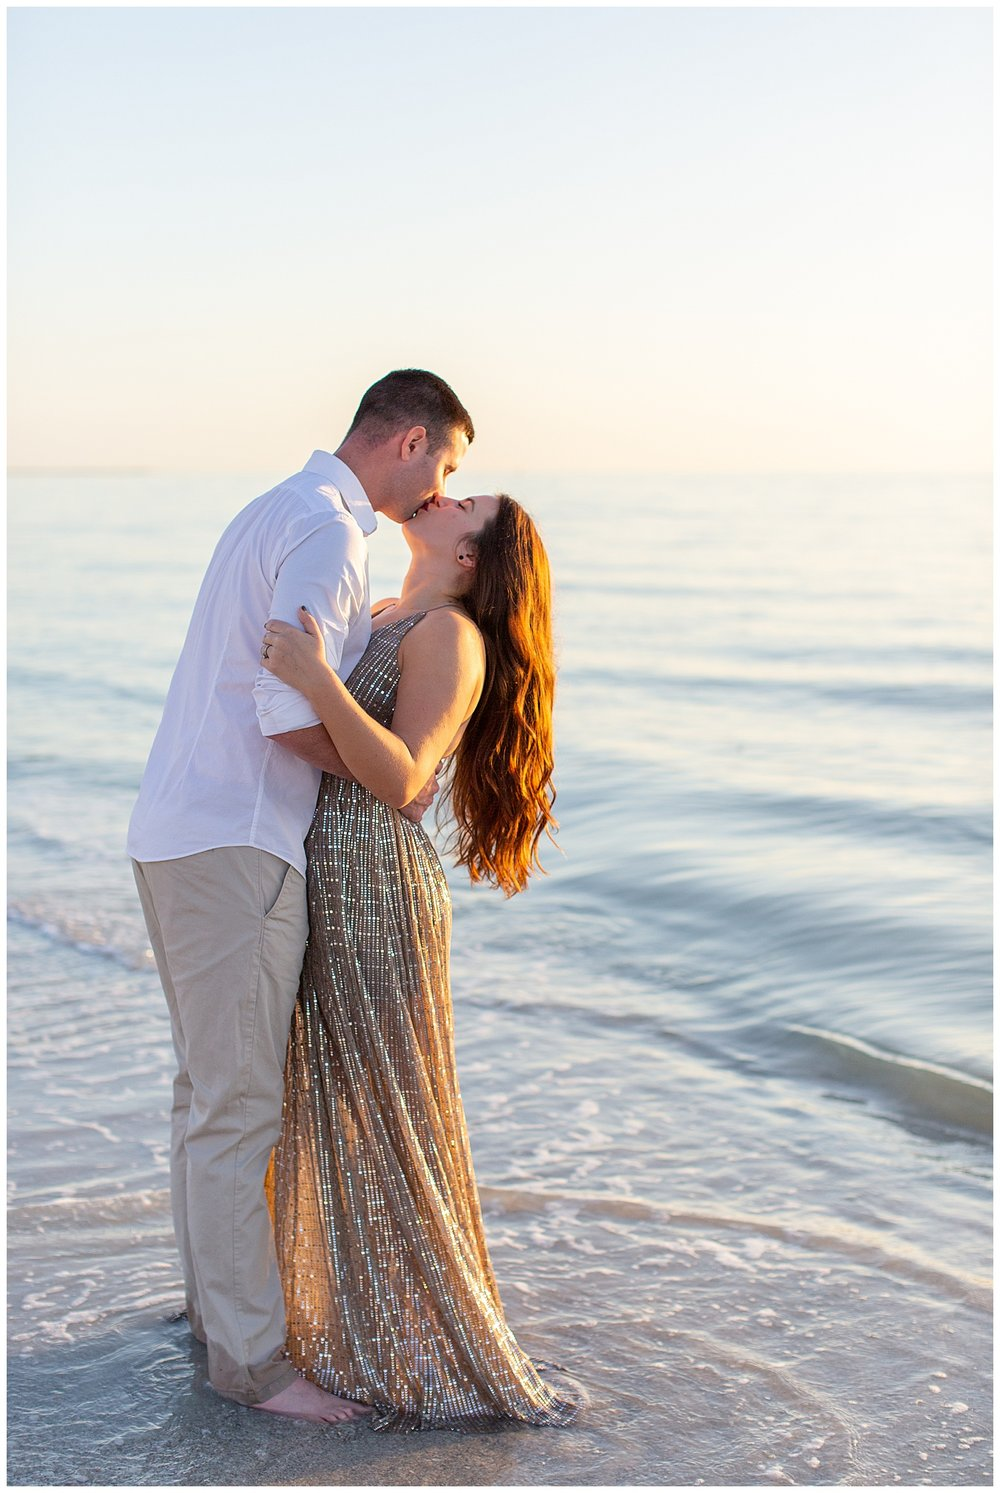 emily-belson-photography-florida-engagement-03.jpg